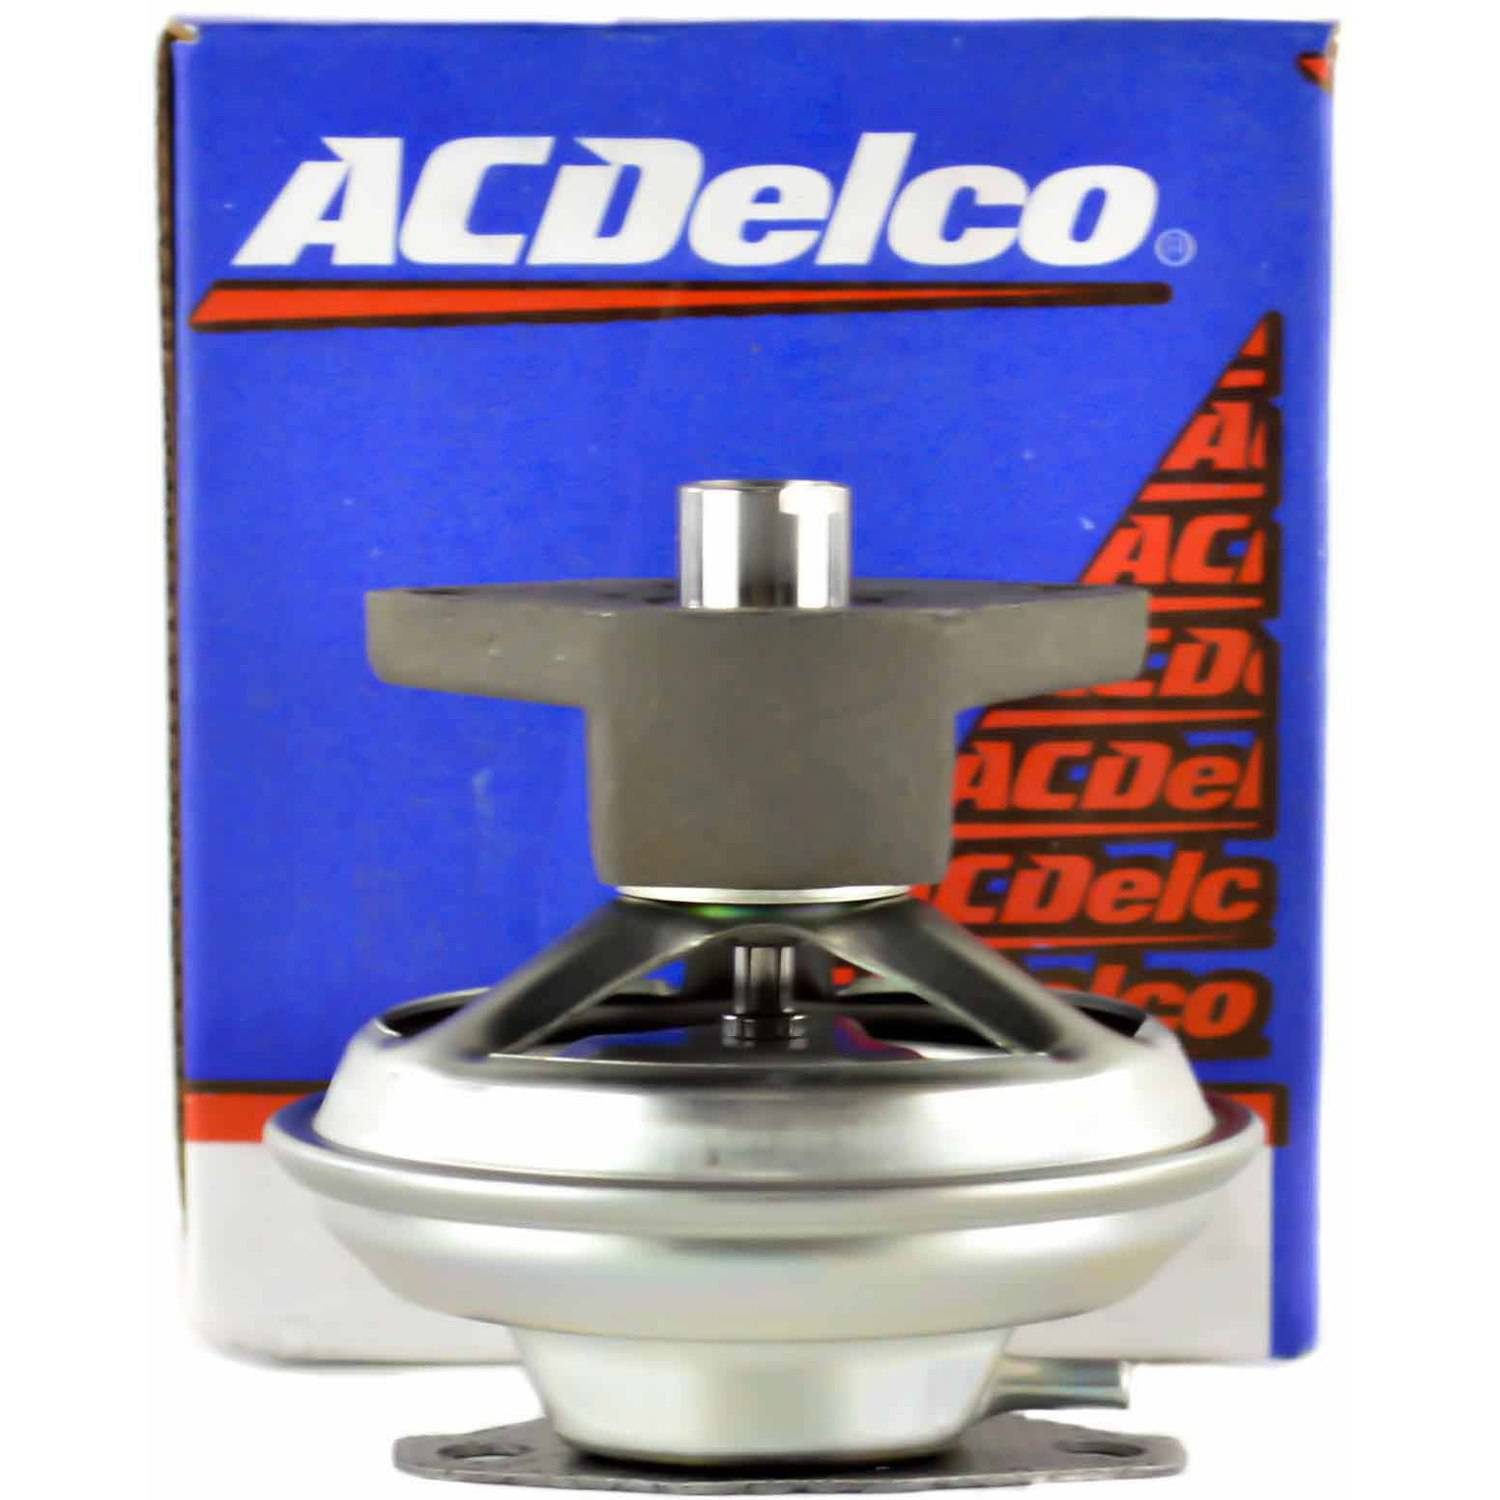 ACDelco 25784660 Engine Cooling Fan Assembly